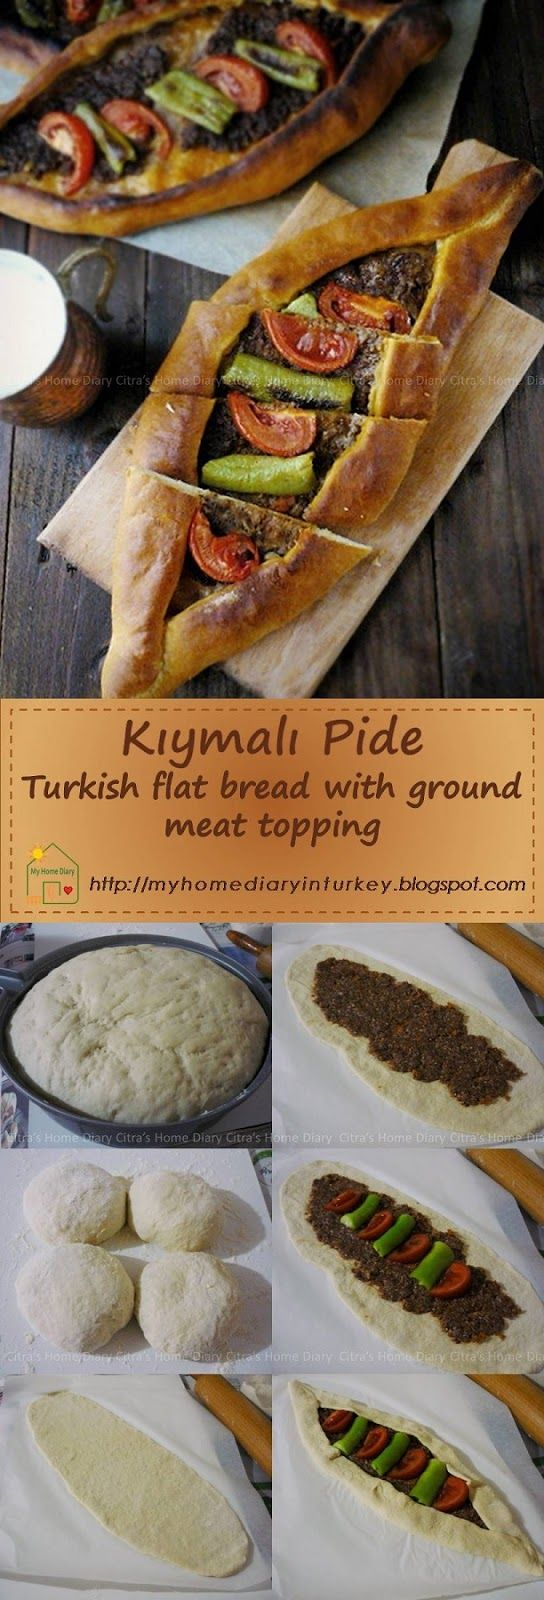 Food blog family tips turkey indonesian in turkey turkish food food blog family tips turkey indonesian in turkey turkish food forumfinder Gallery